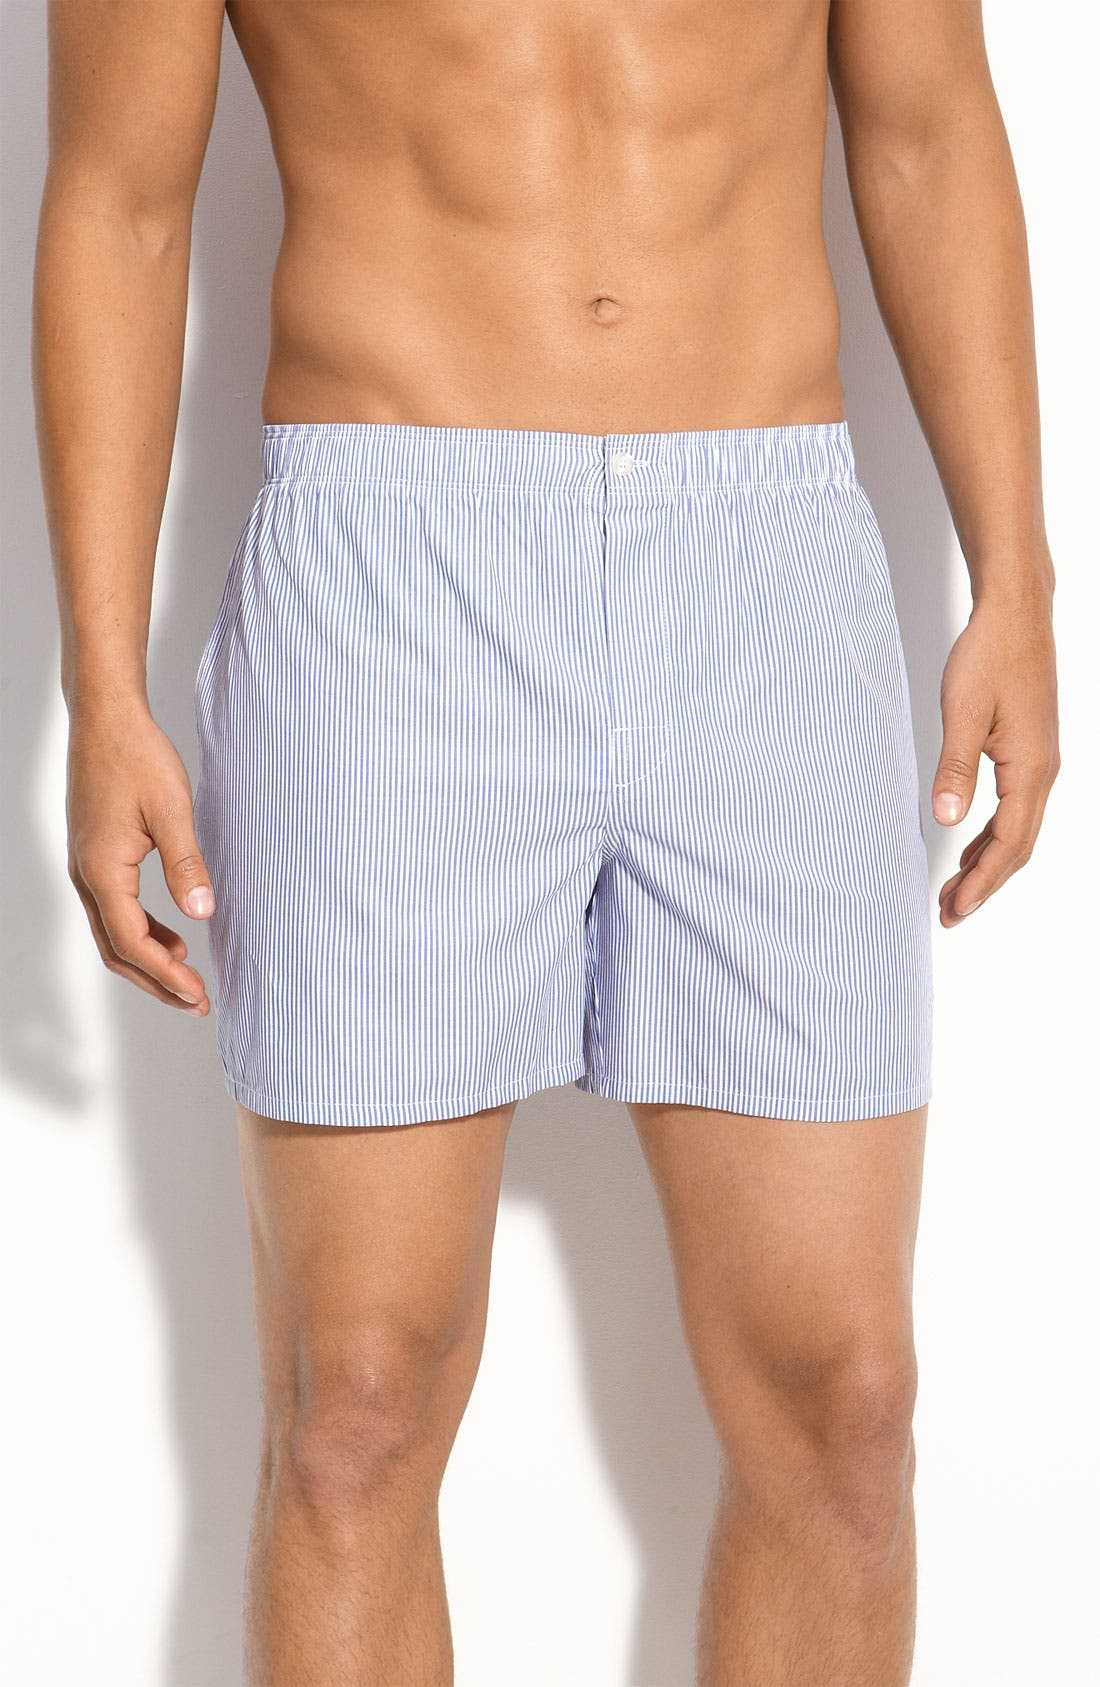 Alternate Image 1 Selected - Nordstrom Trim Fit Cotton Boxers